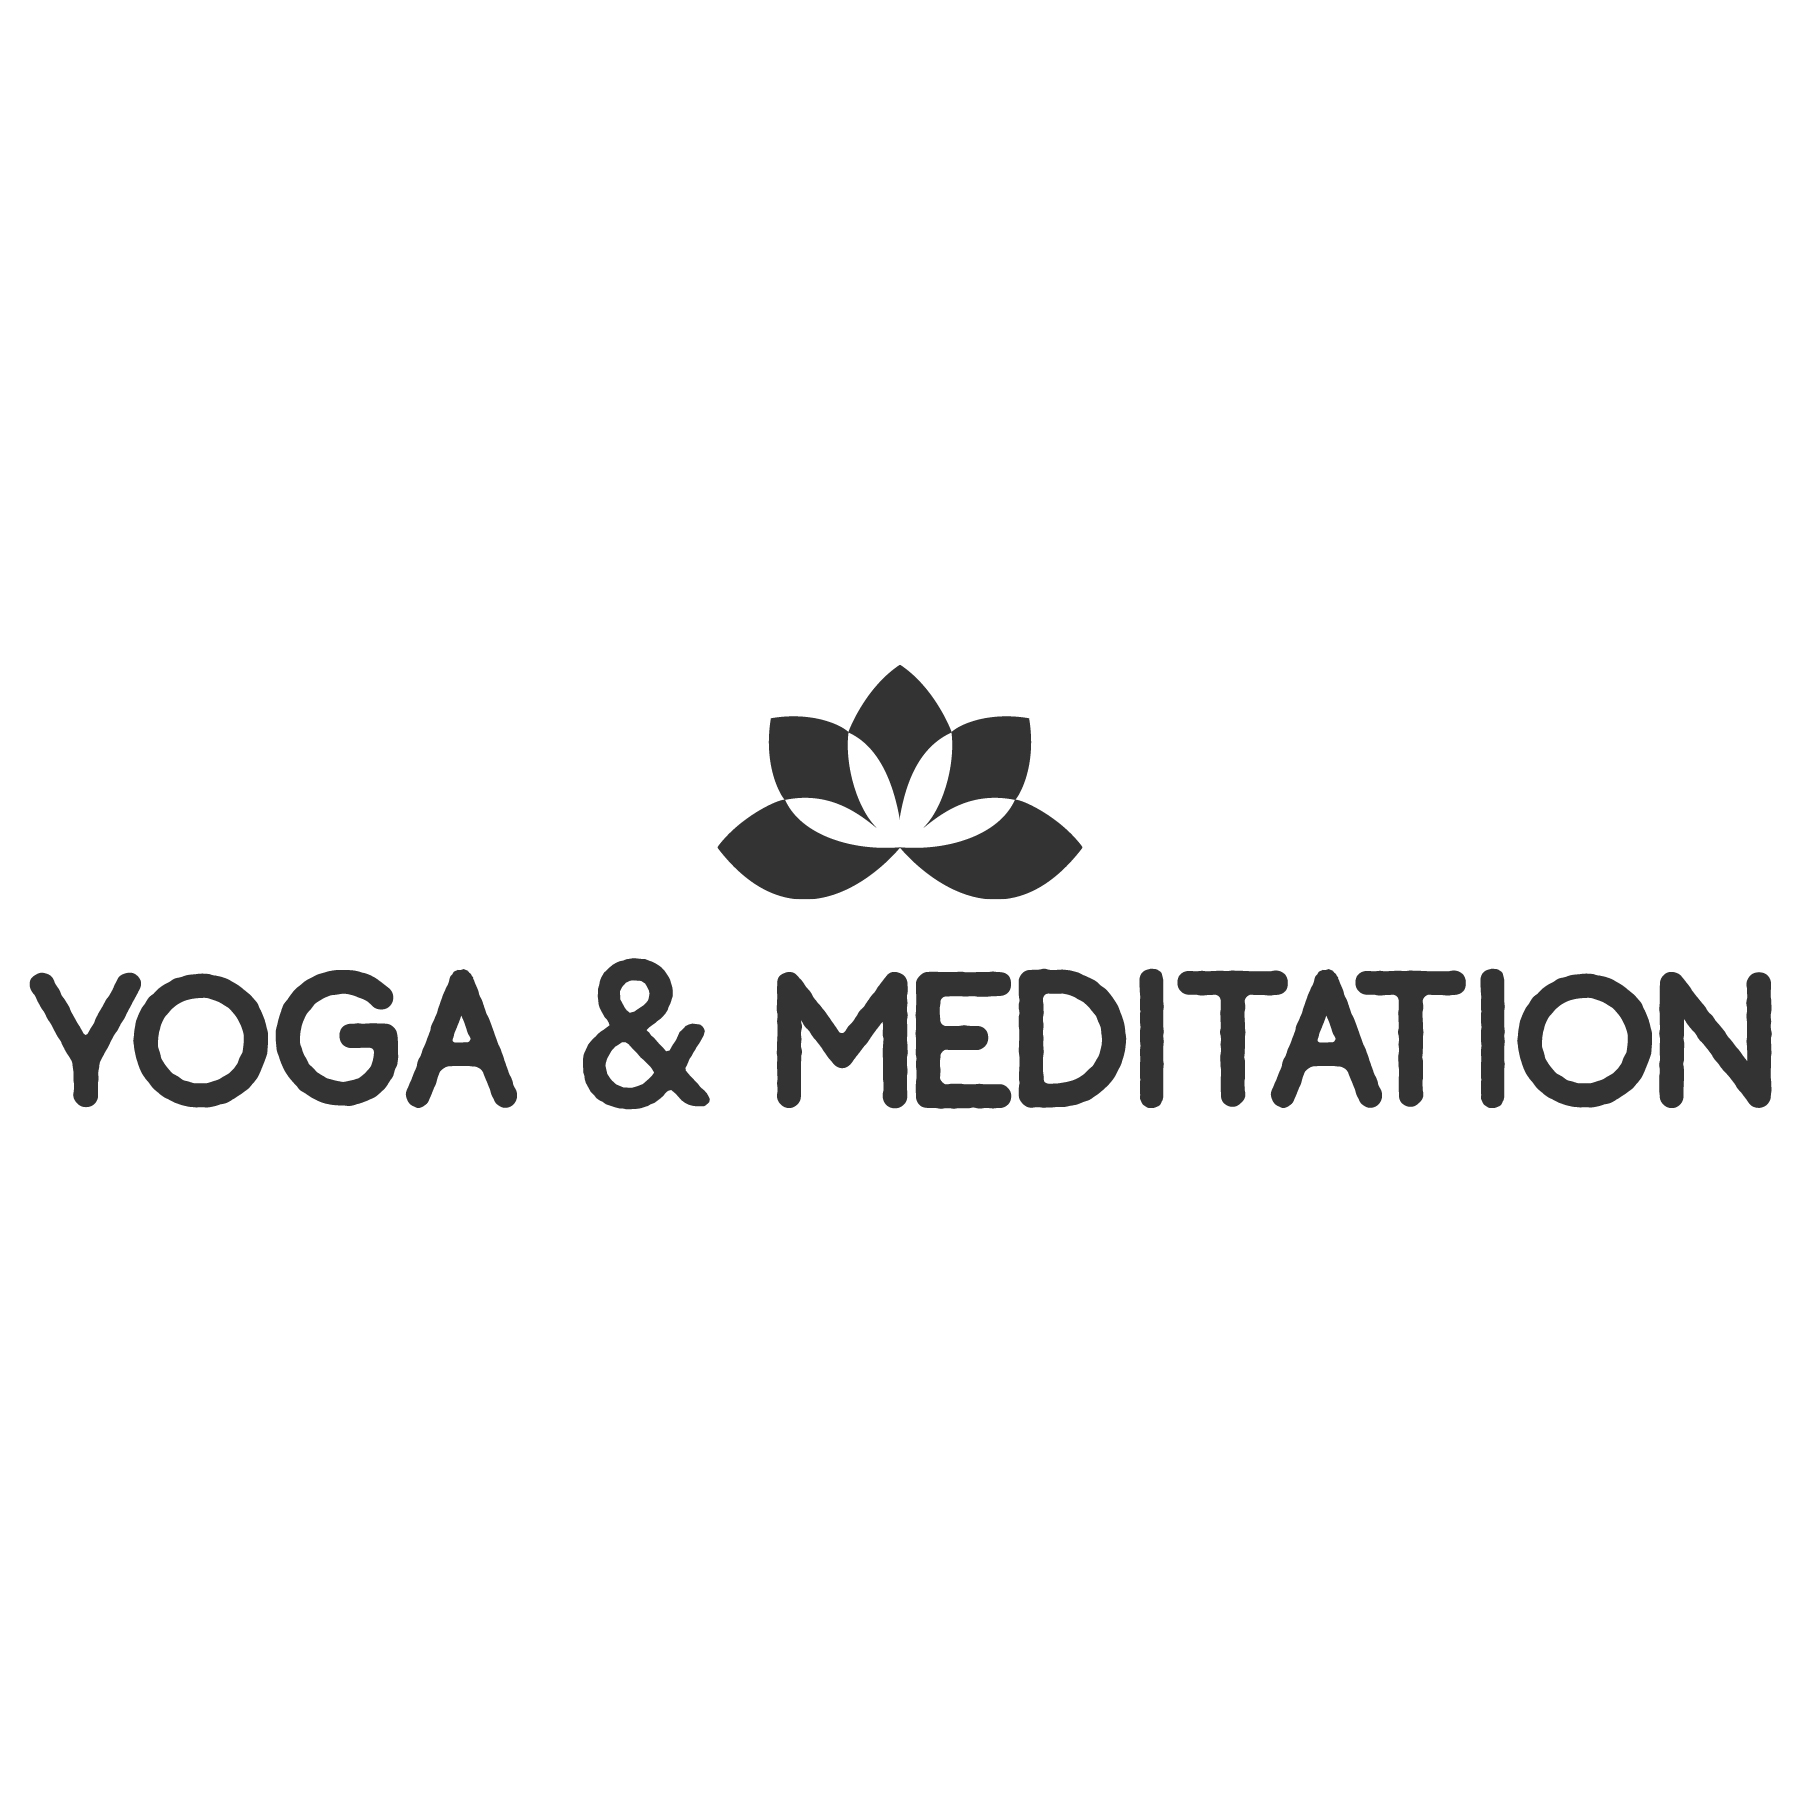 At Good Therapy we offer yoga classes and mindfulness meditation groups for children, adolescents, and adults. Read about the health benefits these classes we have to offer.